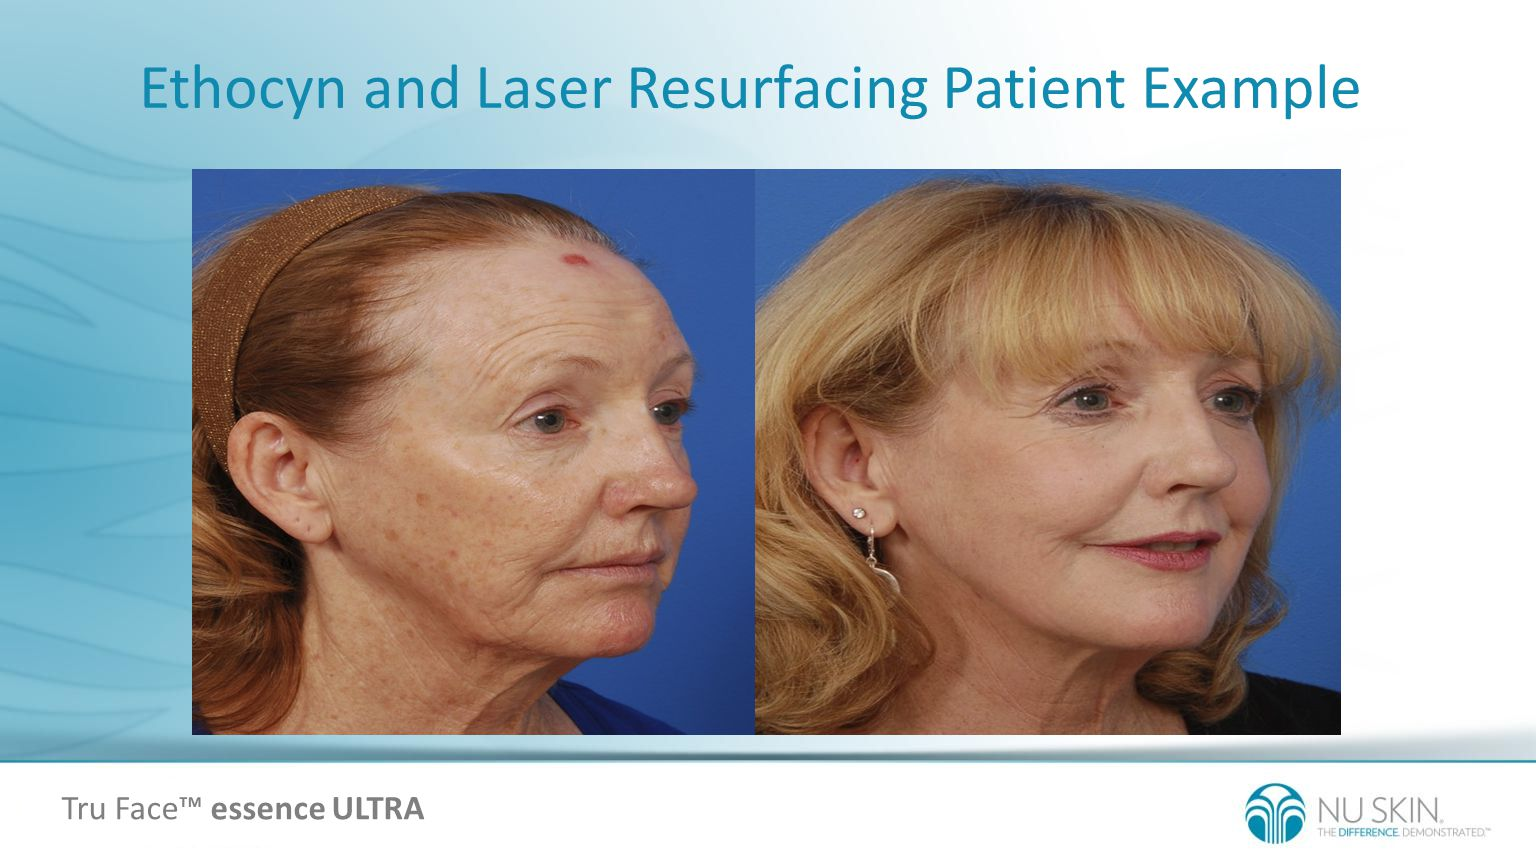 Ethocyn and Laser Resurfacing Patient Example Tru Face essence ULTRA